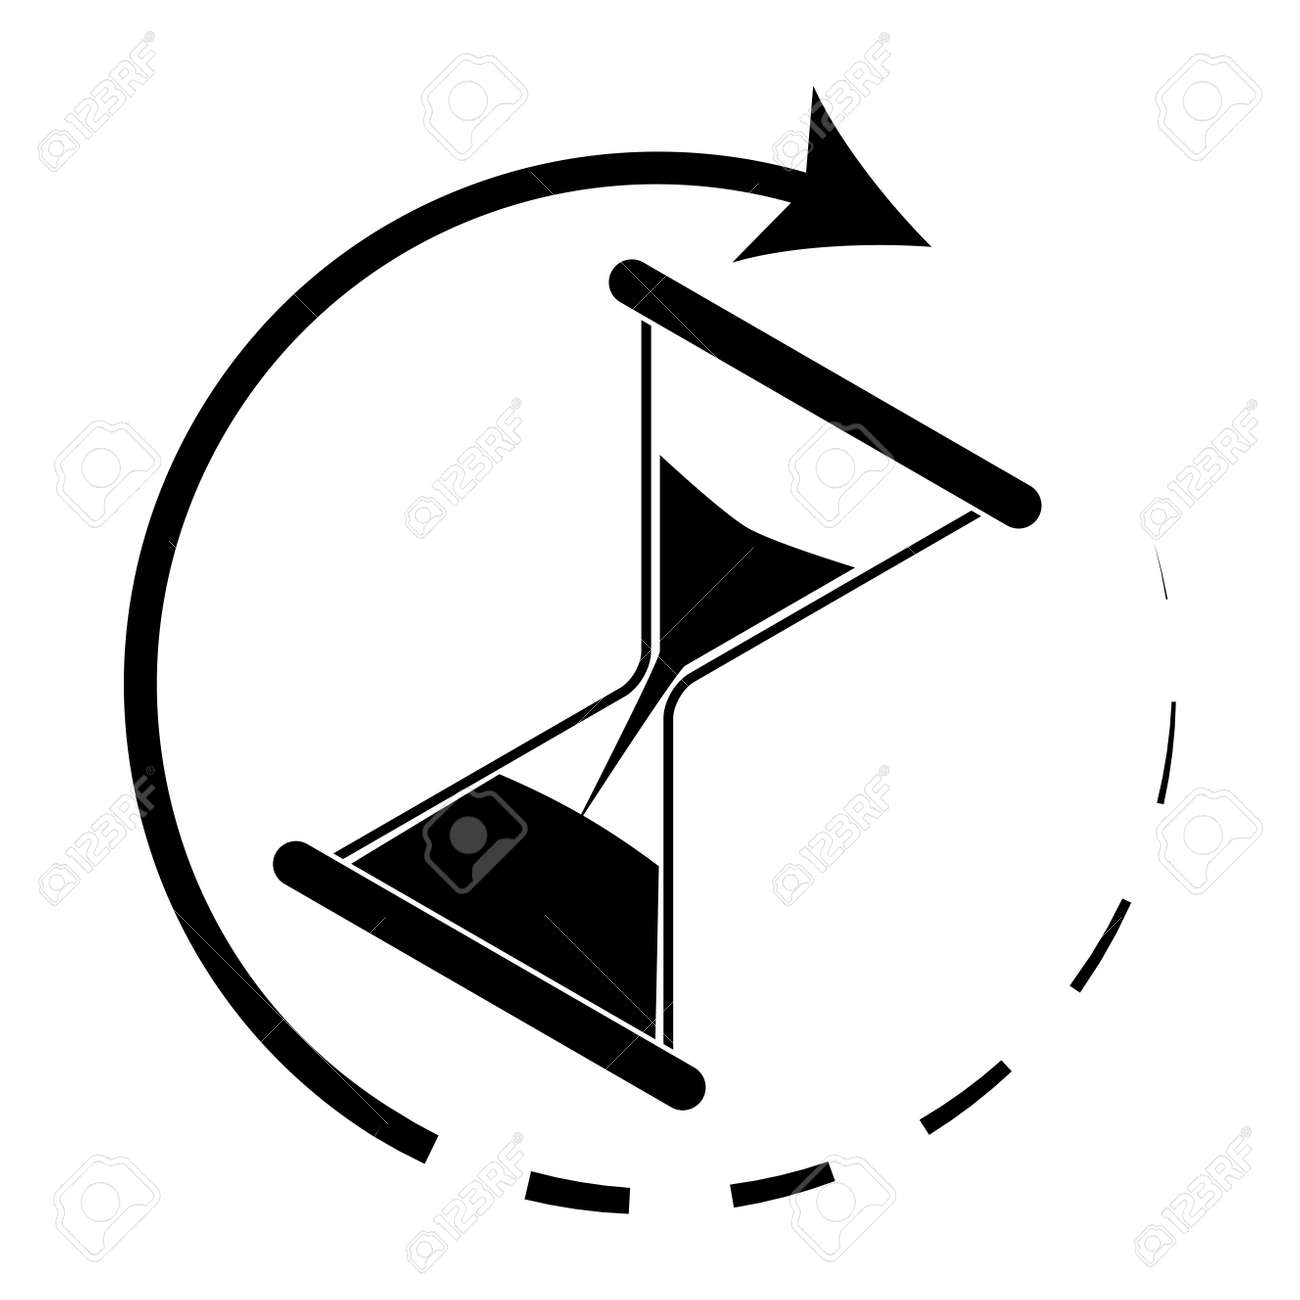 420 constantly stock vector illustration and royalty free hourglass monochrome hourglass icon and time running out vector illustration biocorpaavc Images